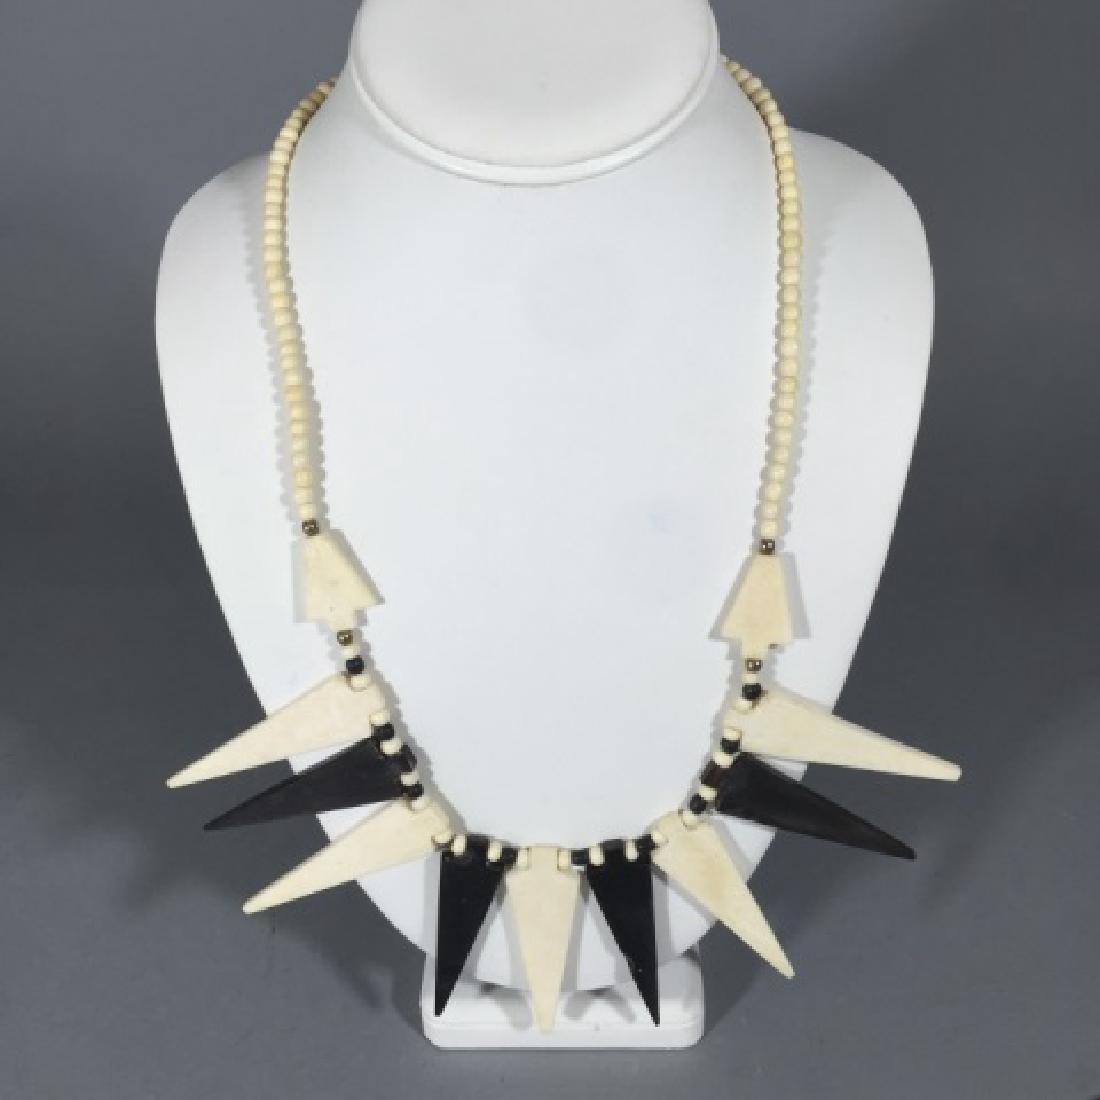 Vintage Tribal Style Black & White Bone Necklace - 4